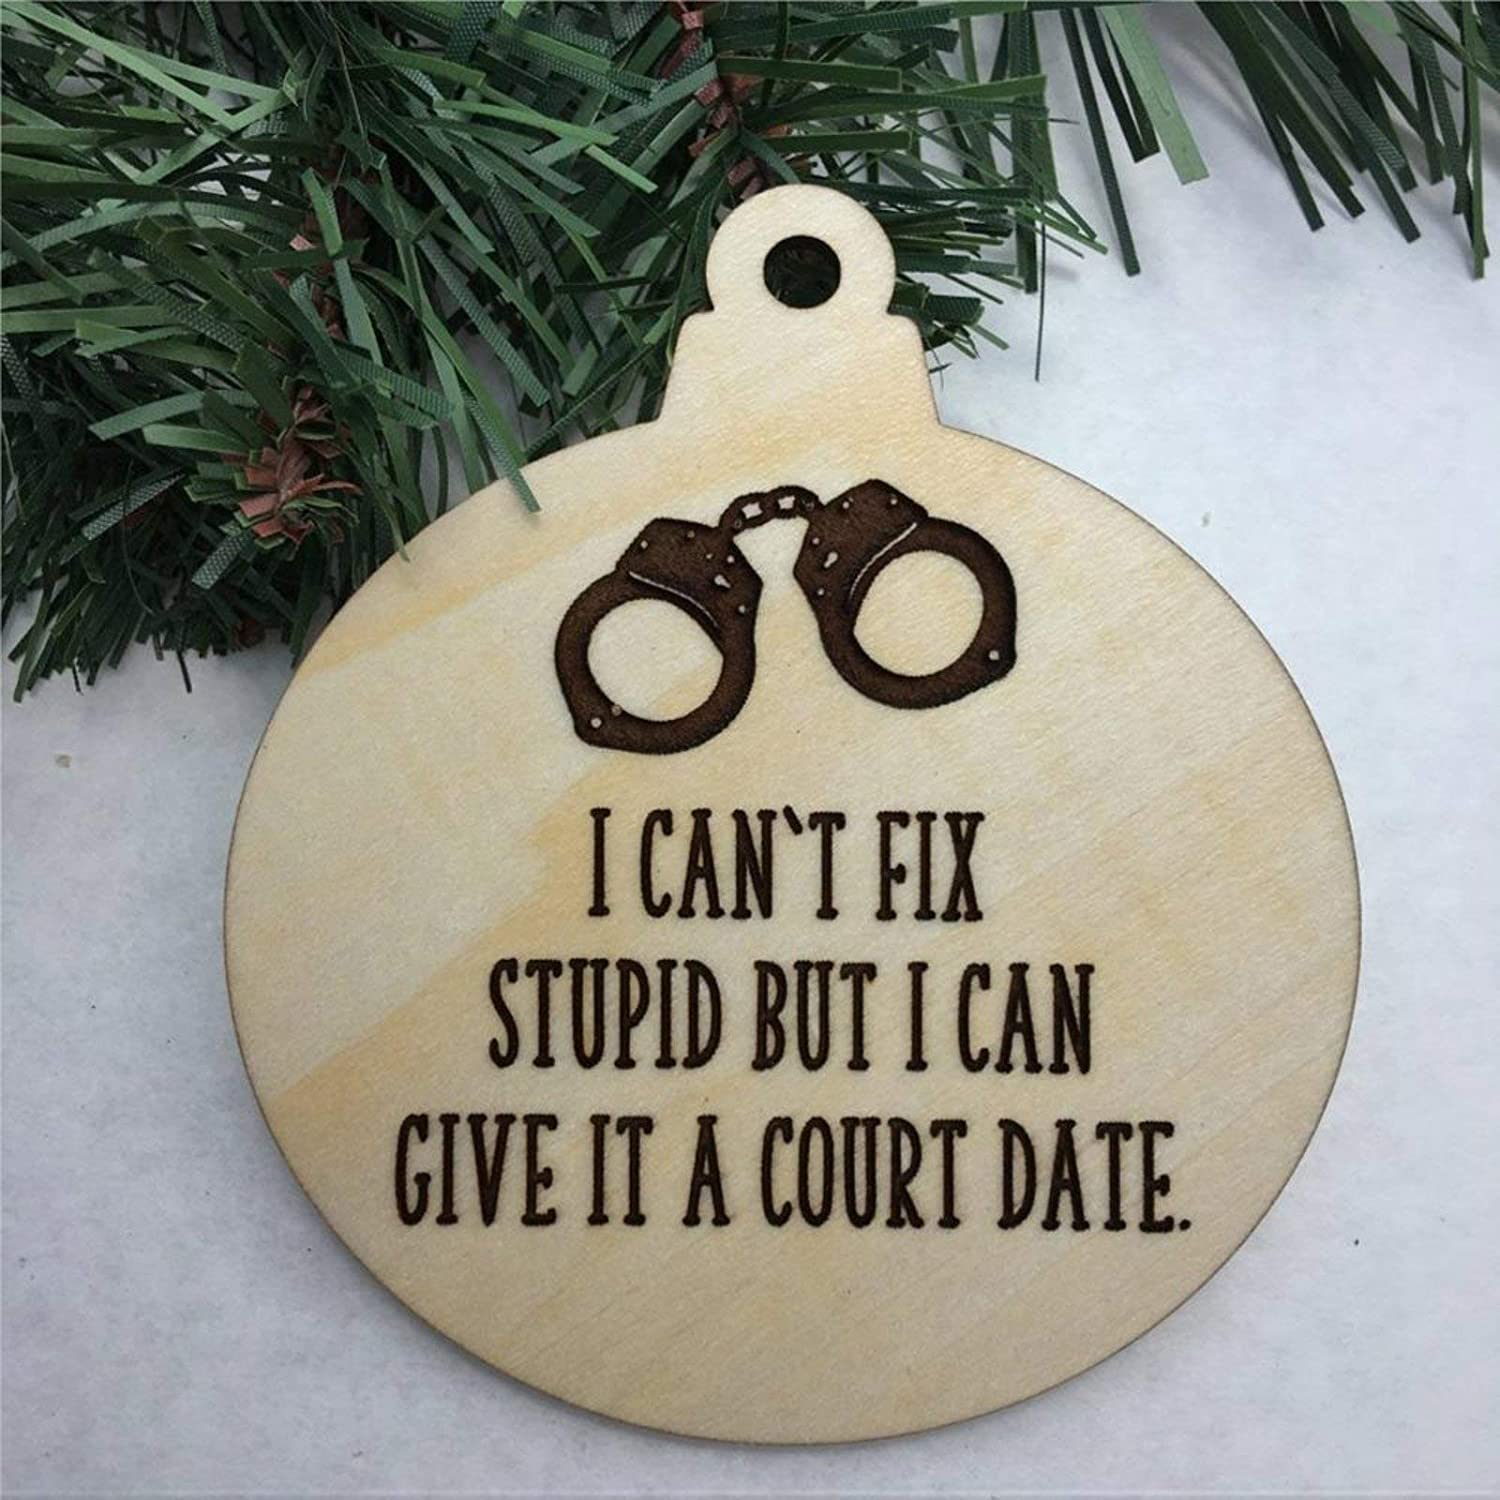 DONL9BAUER Christmas Ornament I Can't Fix Stupid Police Officer Gifts for Men, Funny Cop Gift, Gift for Judge Holiday Tags Wooden Souvenir Custom Decor Anniversary Christmas Tree Decoration